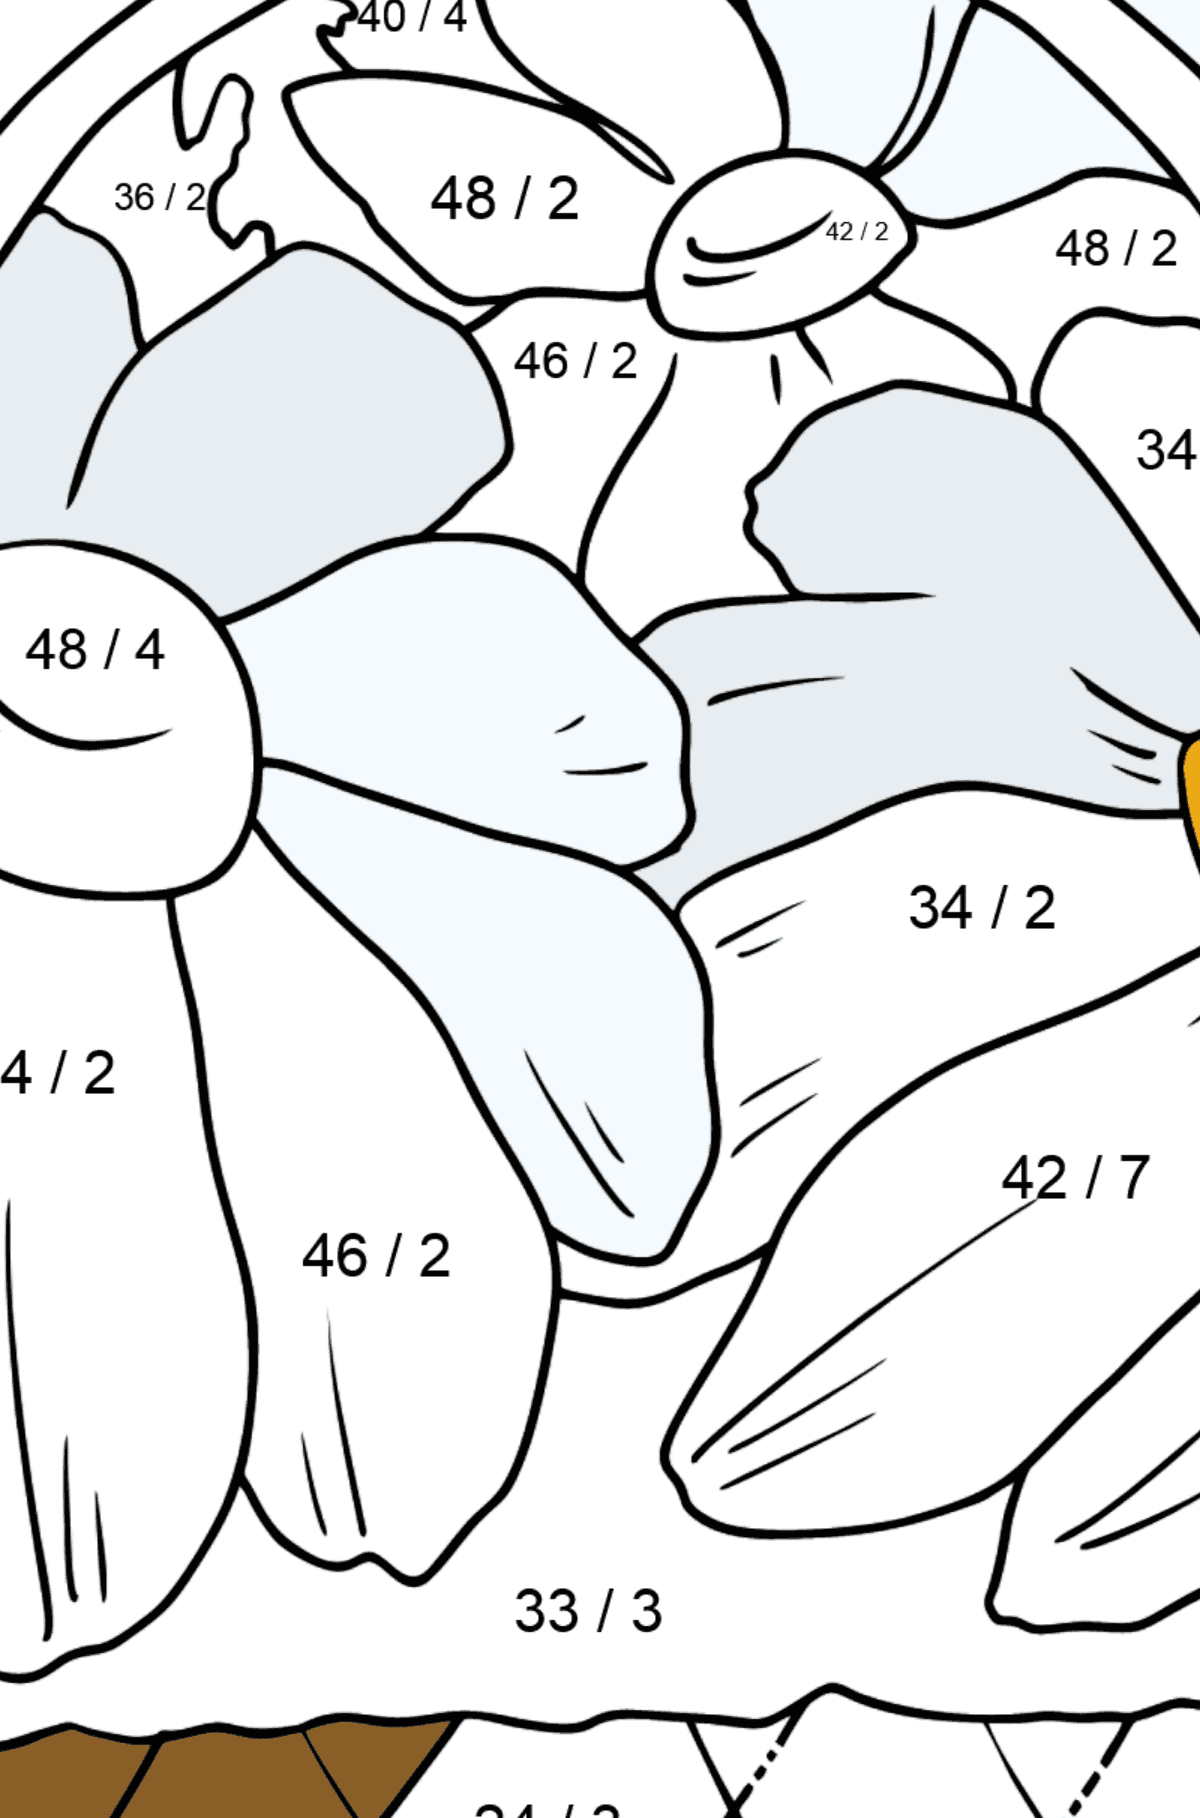 Flower Coloring Page - flowers in a basket - Math Coloring - Division for Kids